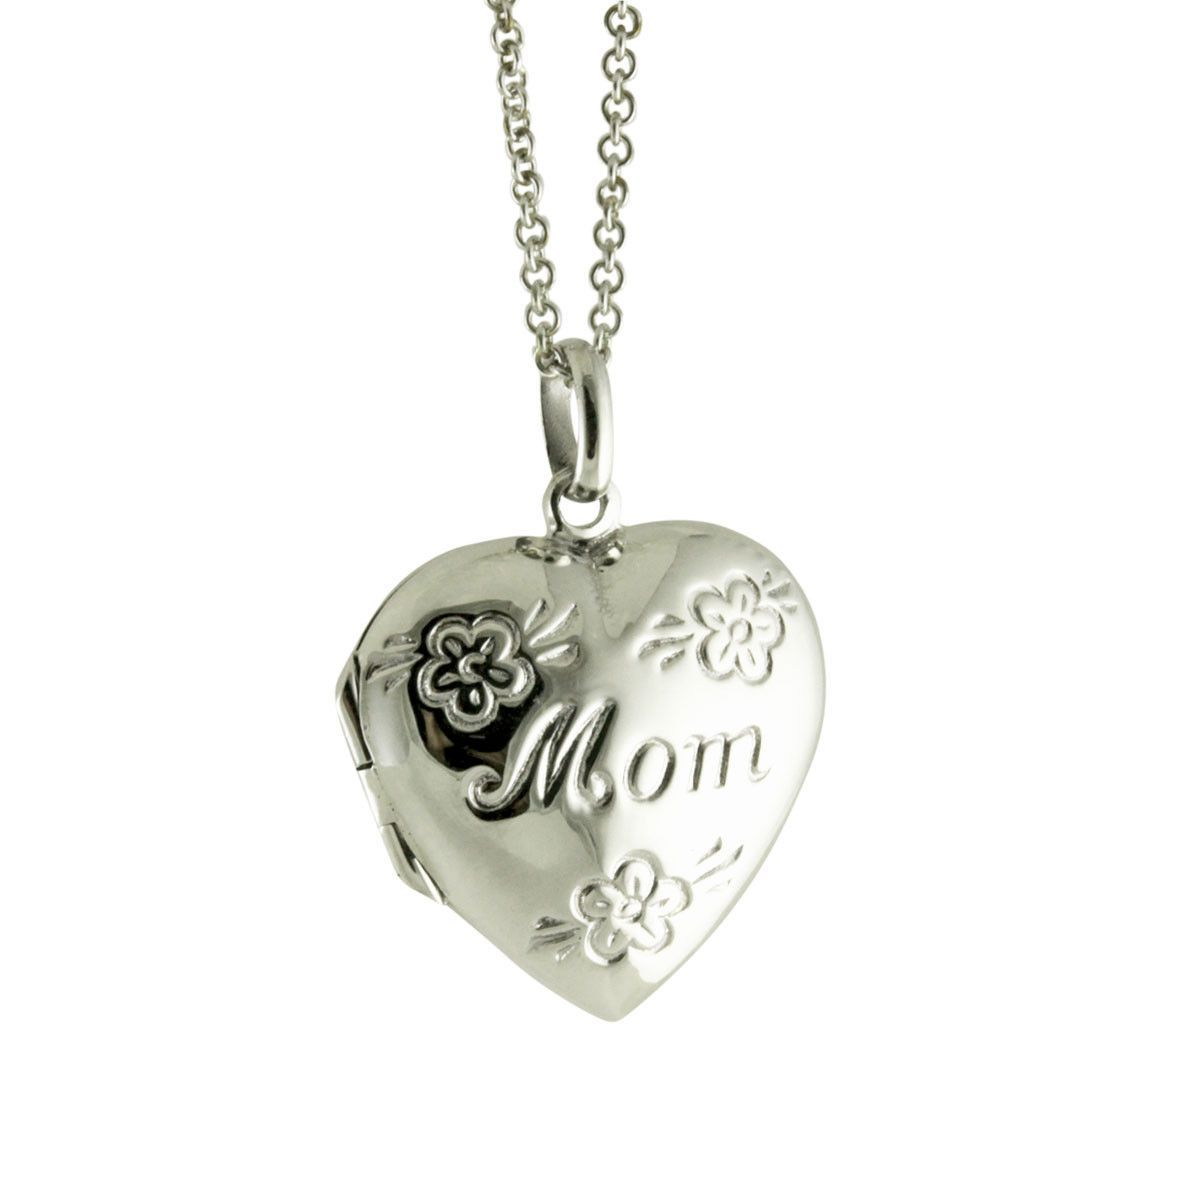 Momus heart locket pendant necklace locket necklace pinterest